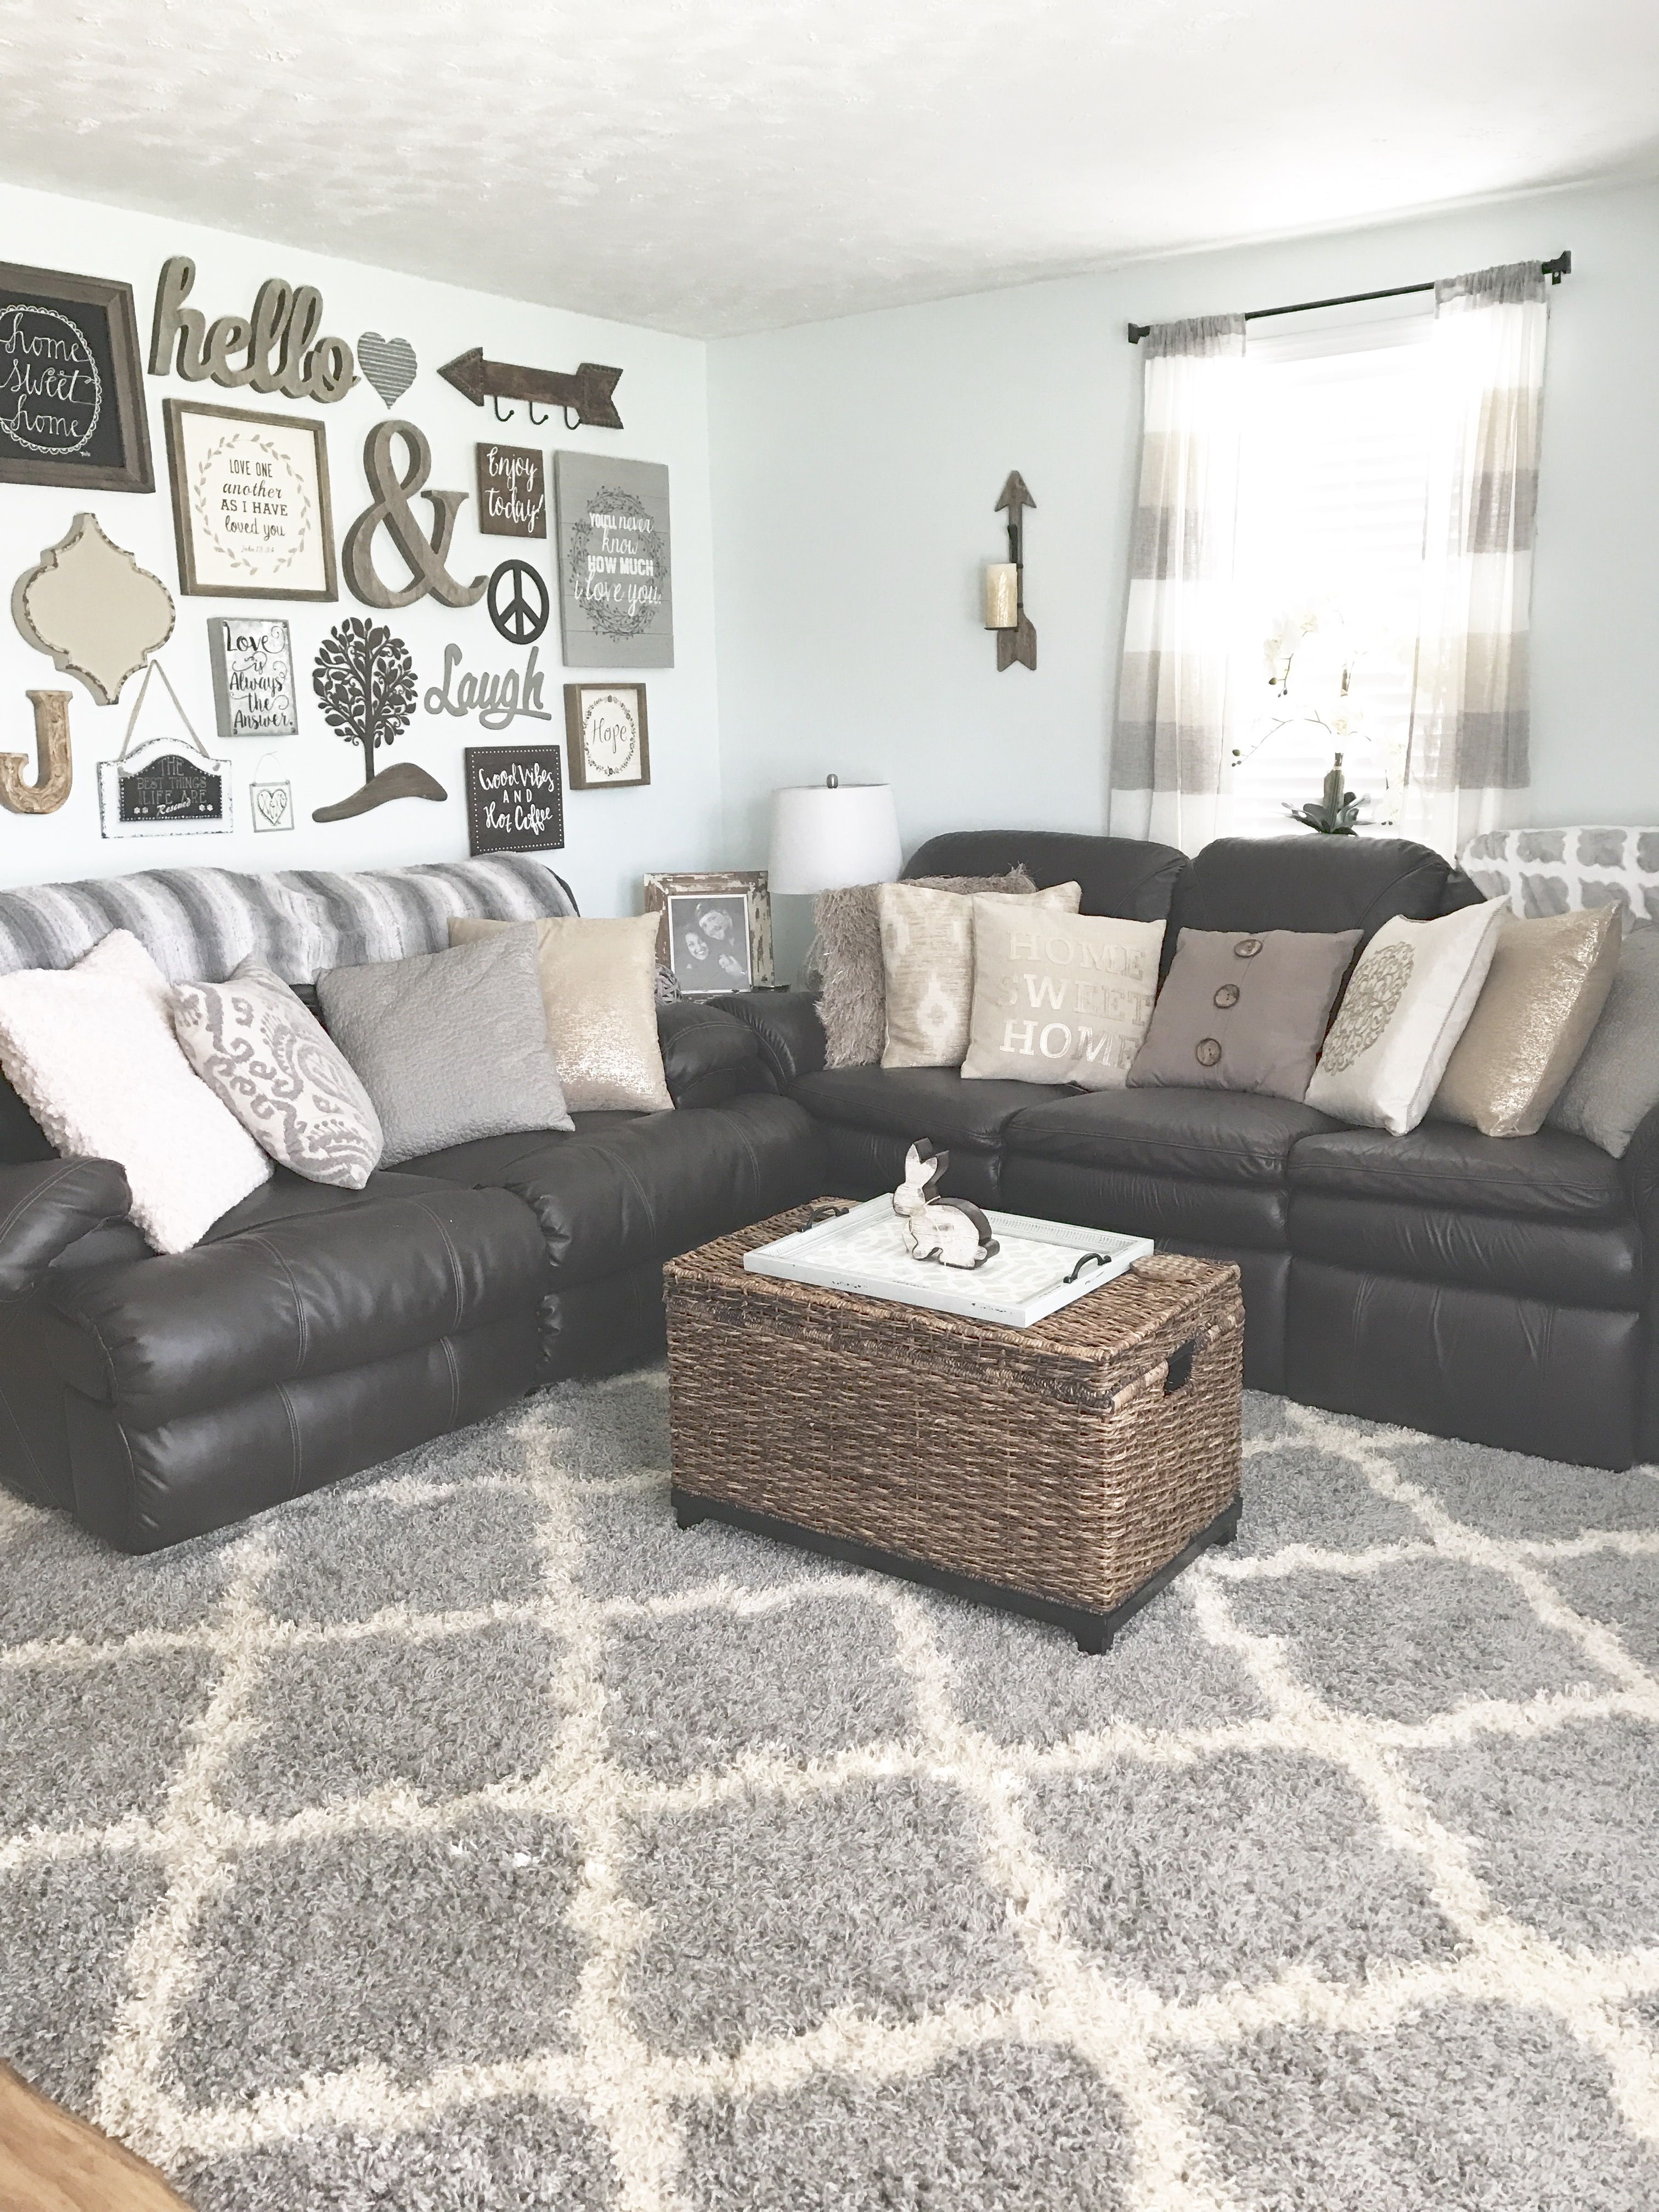 Grey Living Room Furniture Set Old Makeover Best Trends For Rustic Chic Rooms Home Interior Design Maybe Some Ideas Later In The Family